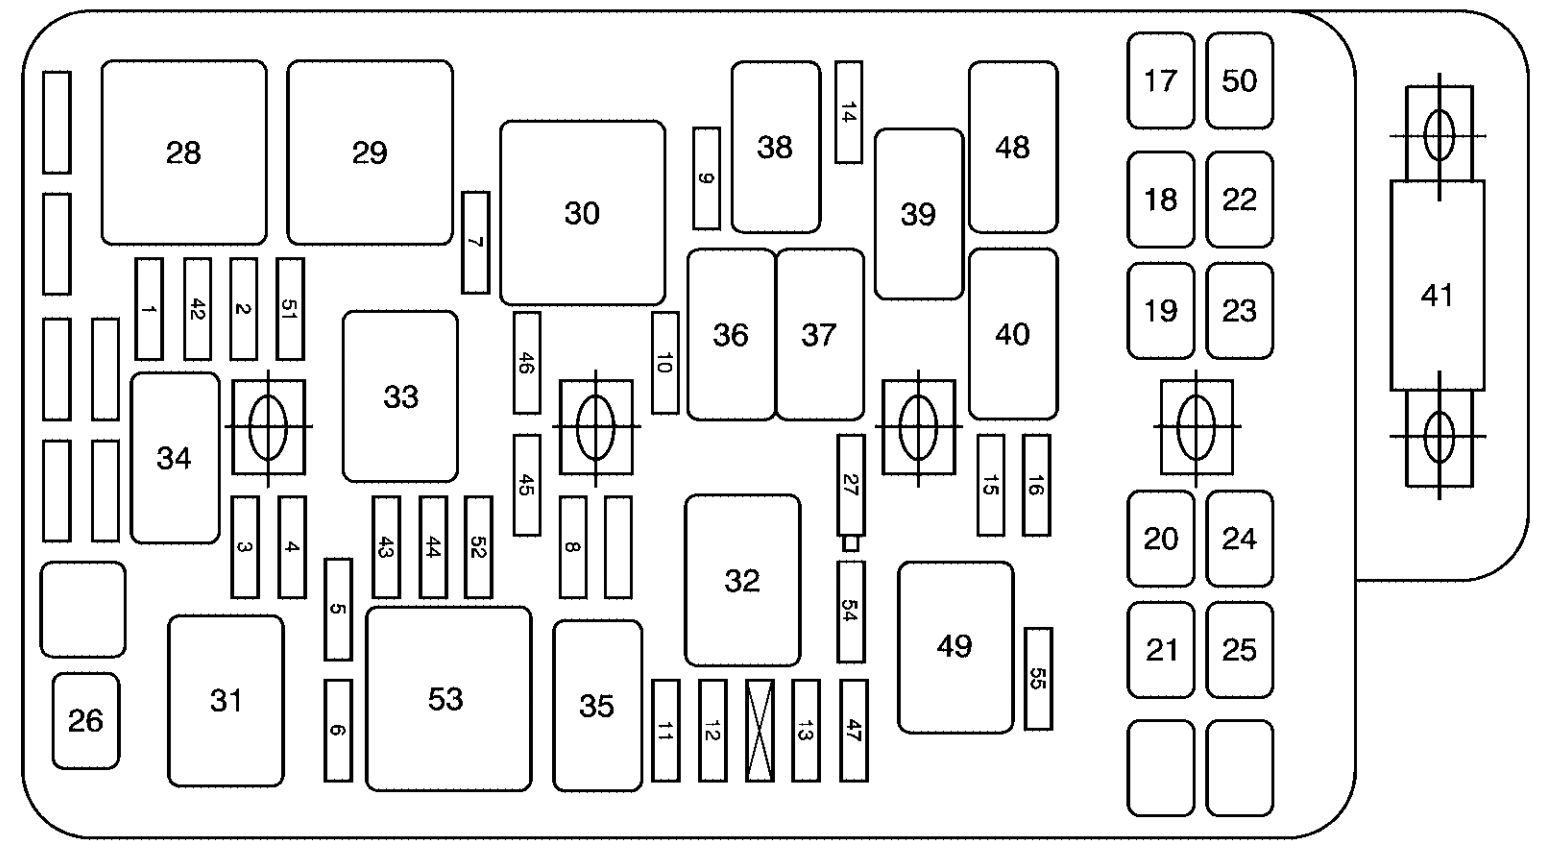 pontiac g6 fuse engine compartment g6 fuse box fuse diagram for 2006 pontiac grand am \u2022 wiring 2005 pontiac g6 fuse box at n-0.co